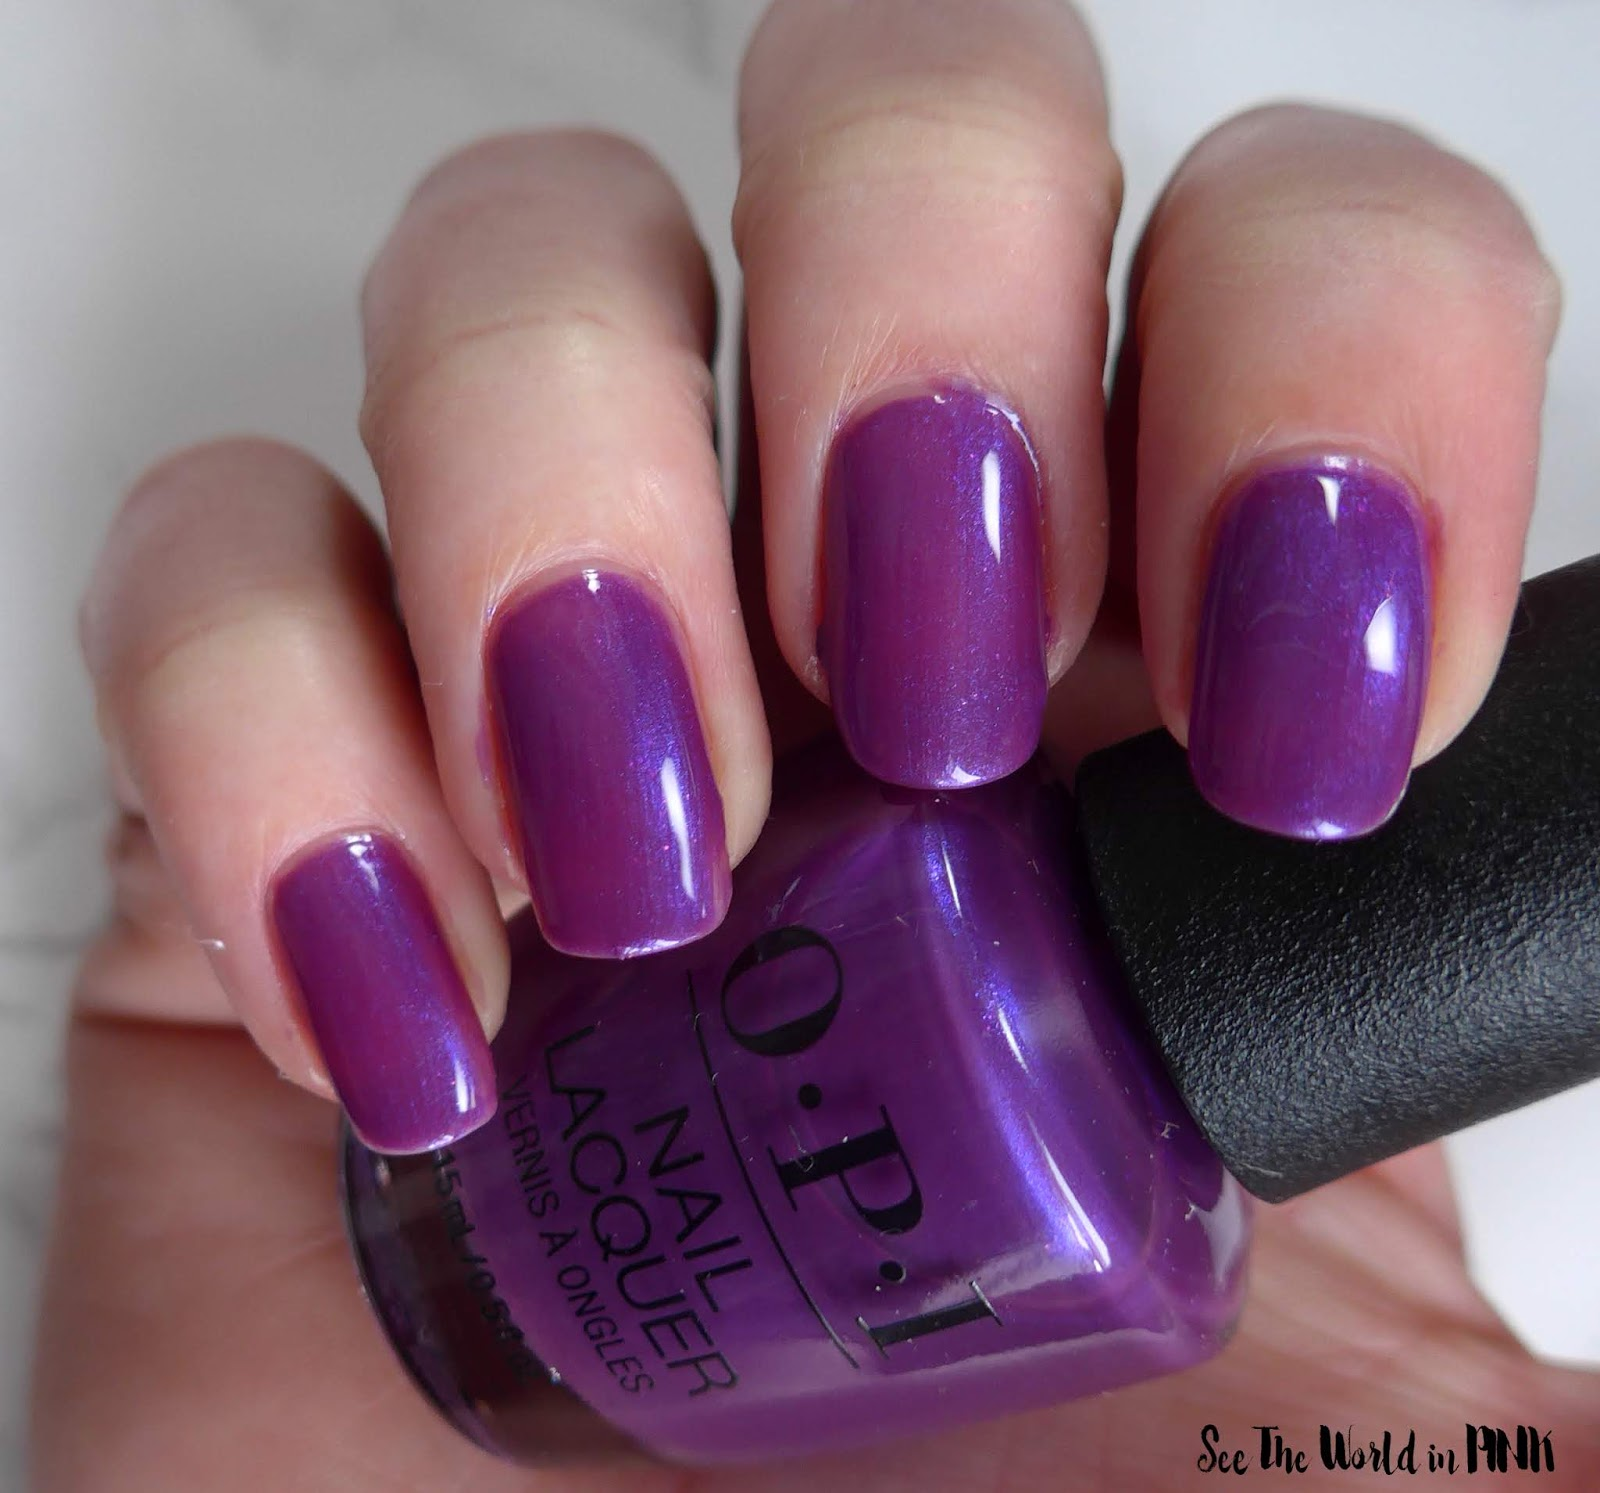 Manicure Monday - OPI Tokyo Collection for Spring and Summer 2019 Samurai Breaks a Nail